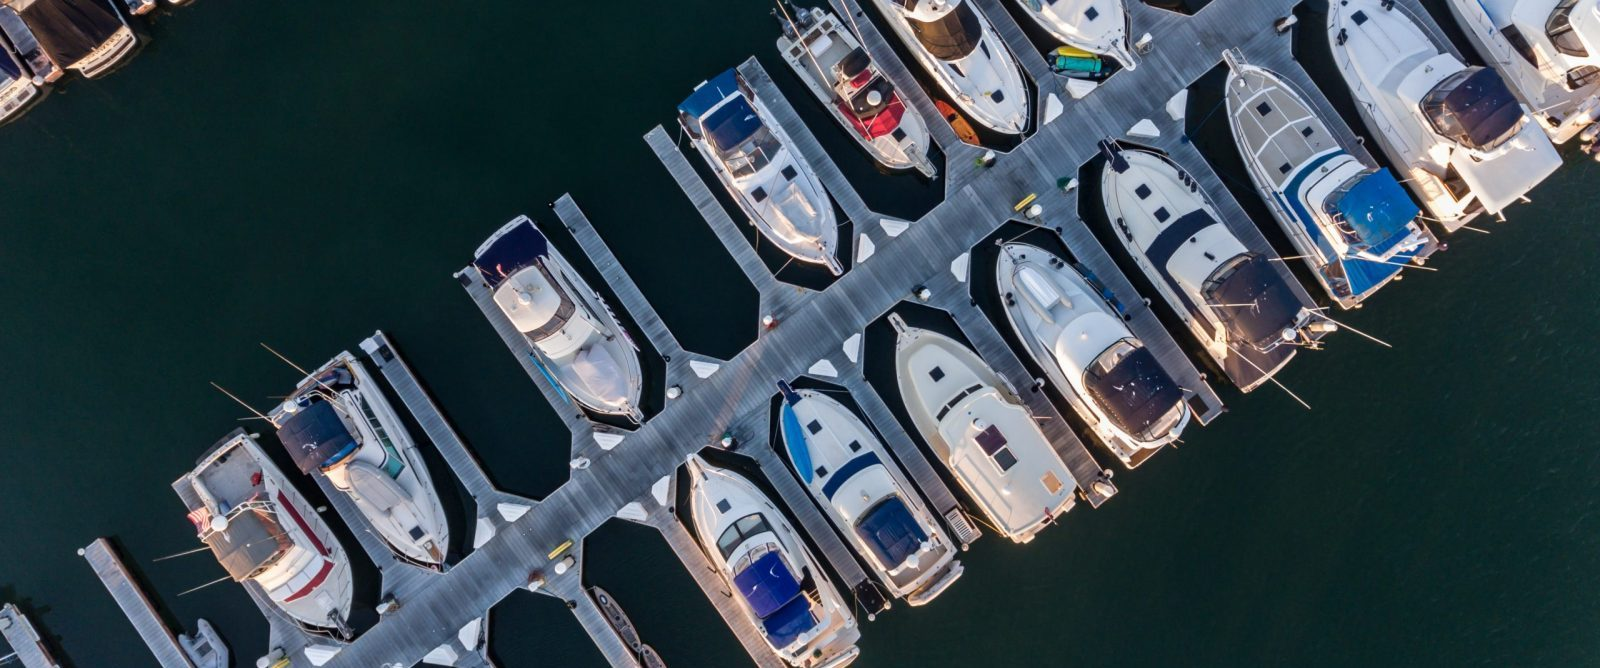 Aerial view of boats in their slips